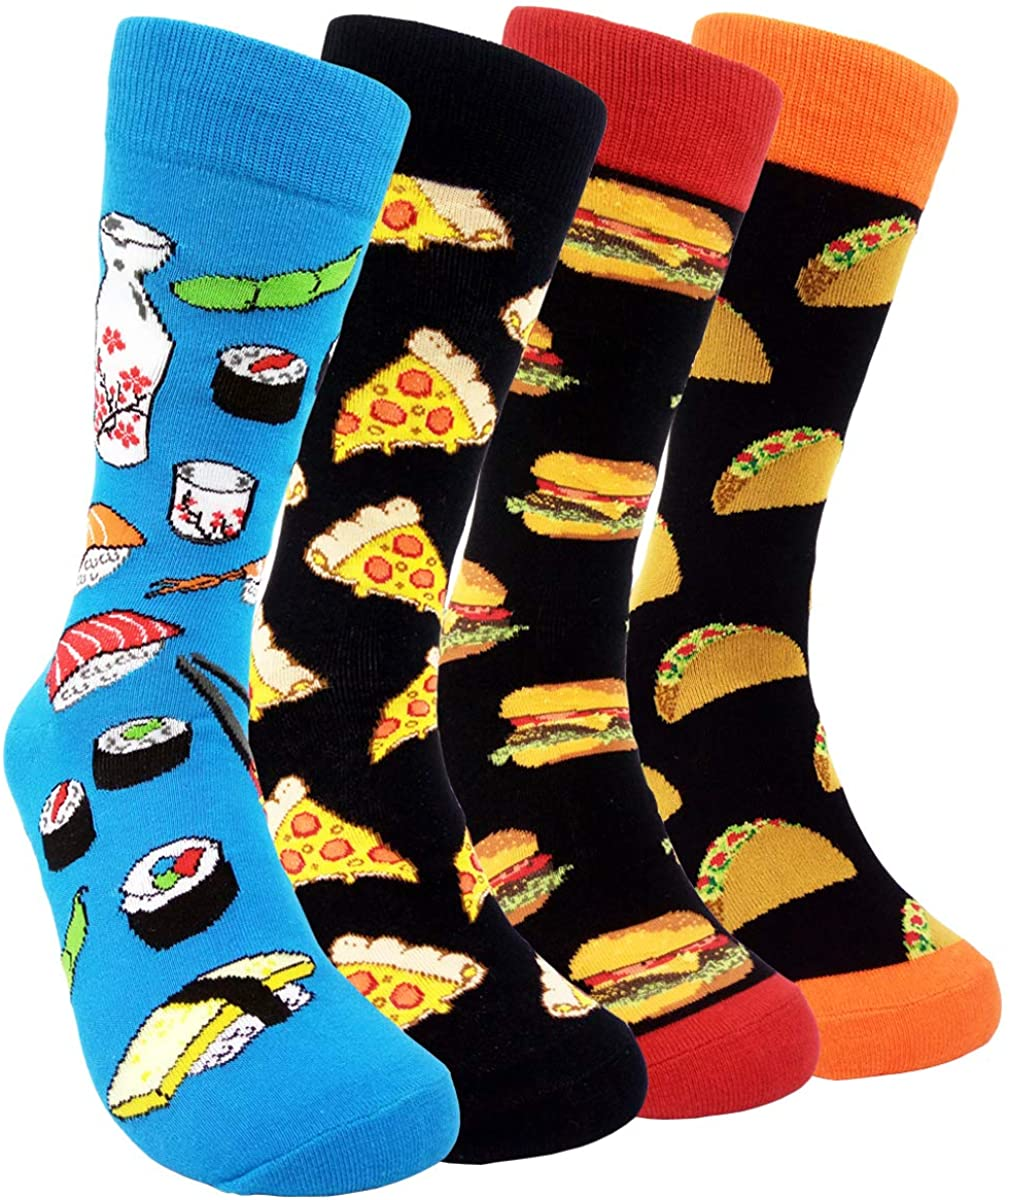 Top 7 Food Socks